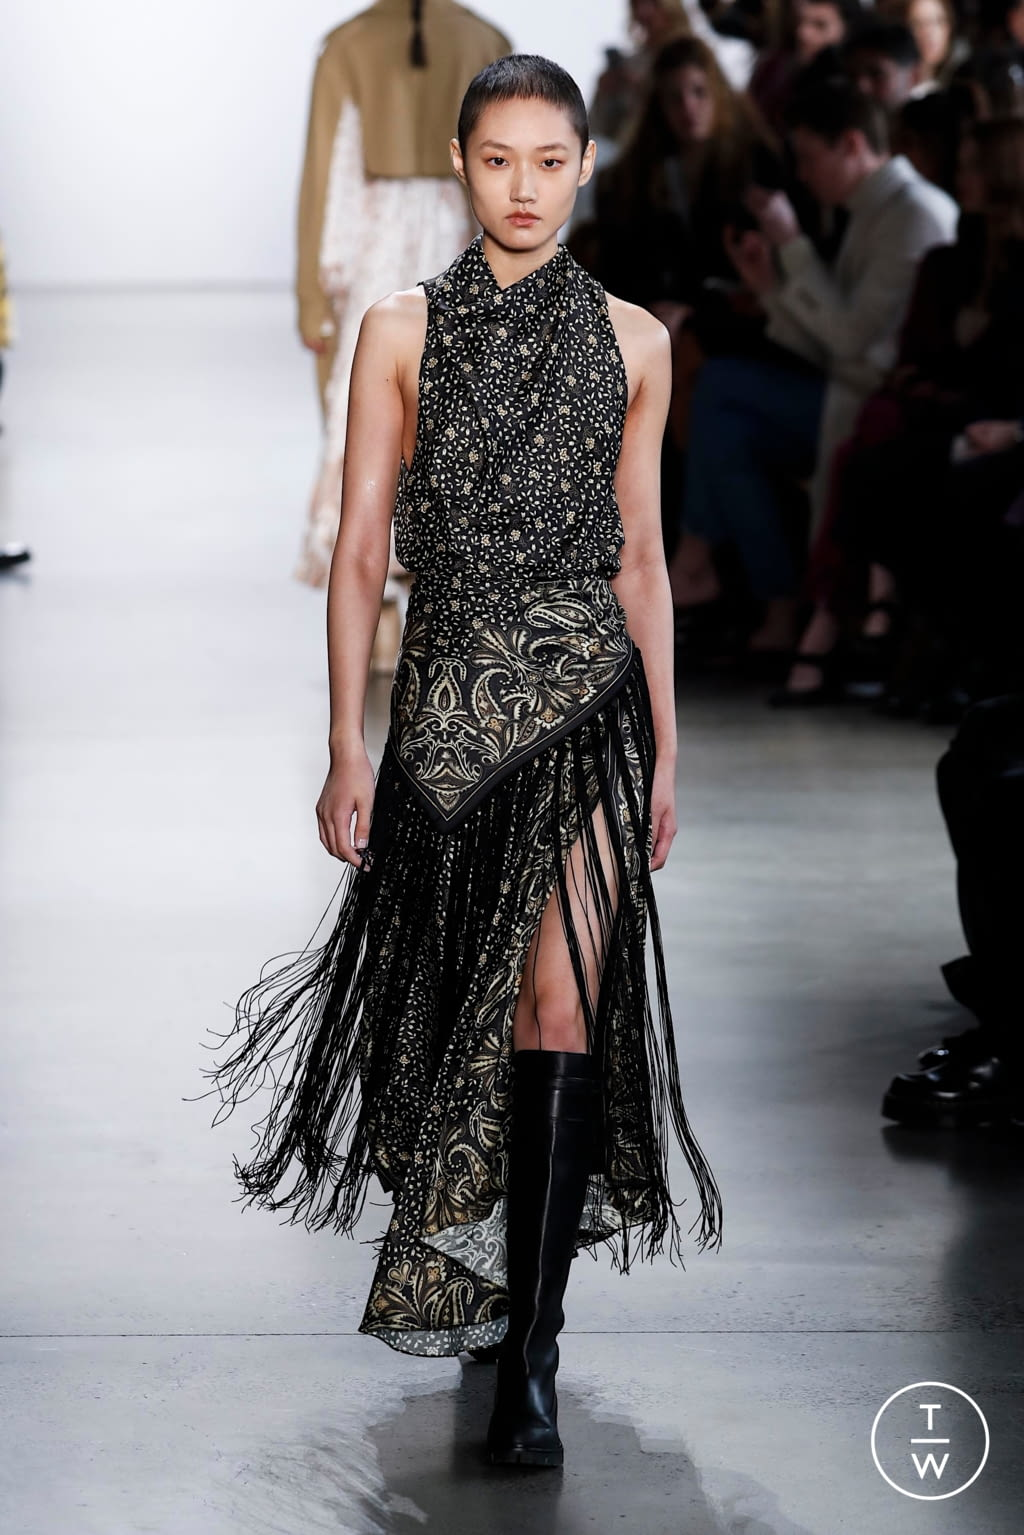 Fashion Week New York Fall/Winter 2020 look 27 from the Jonathan Simkhai collection 女装